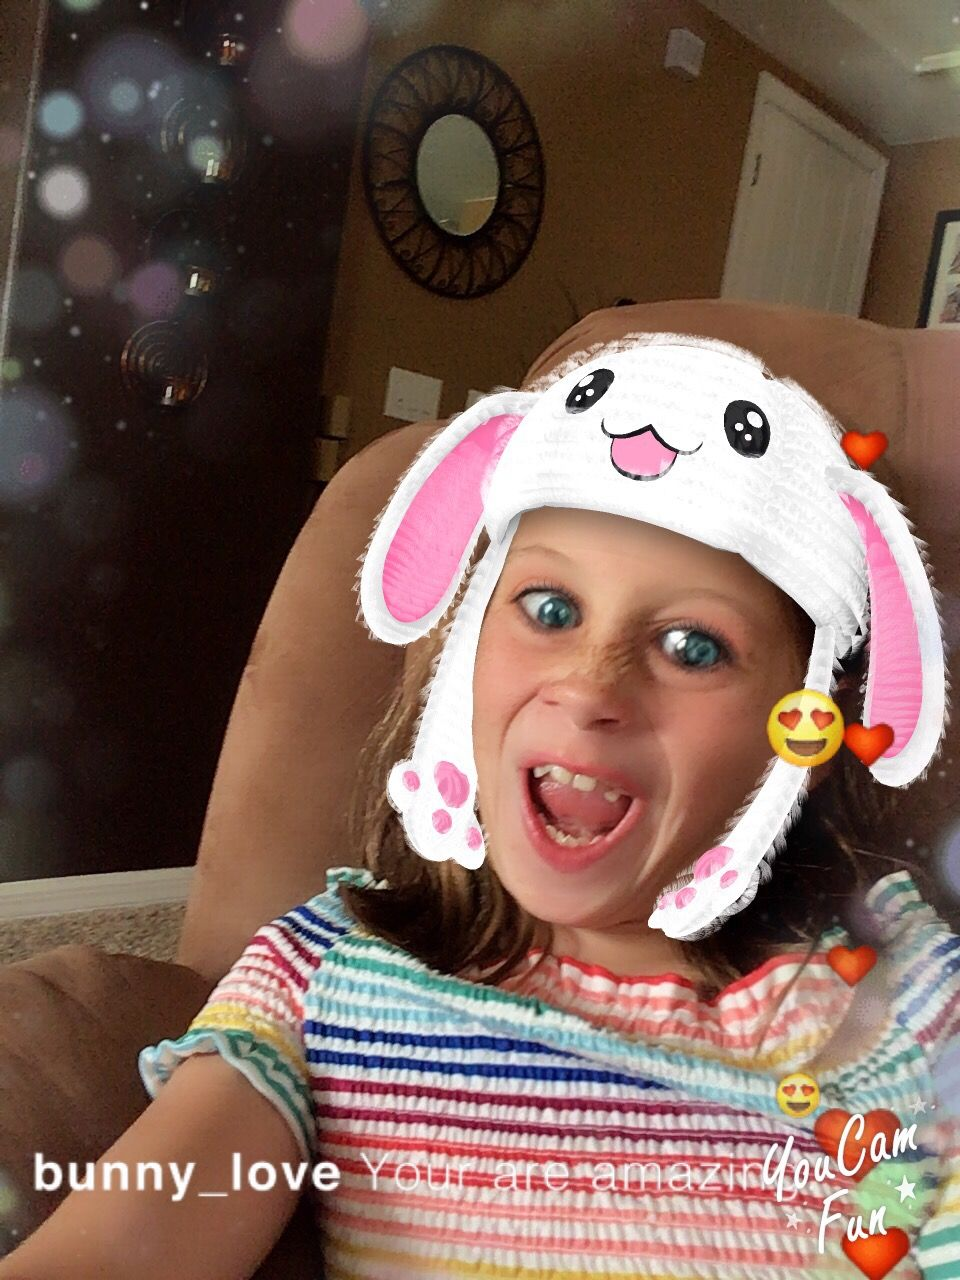 #i was babysitting again and i let the kids play on my phone and i found this